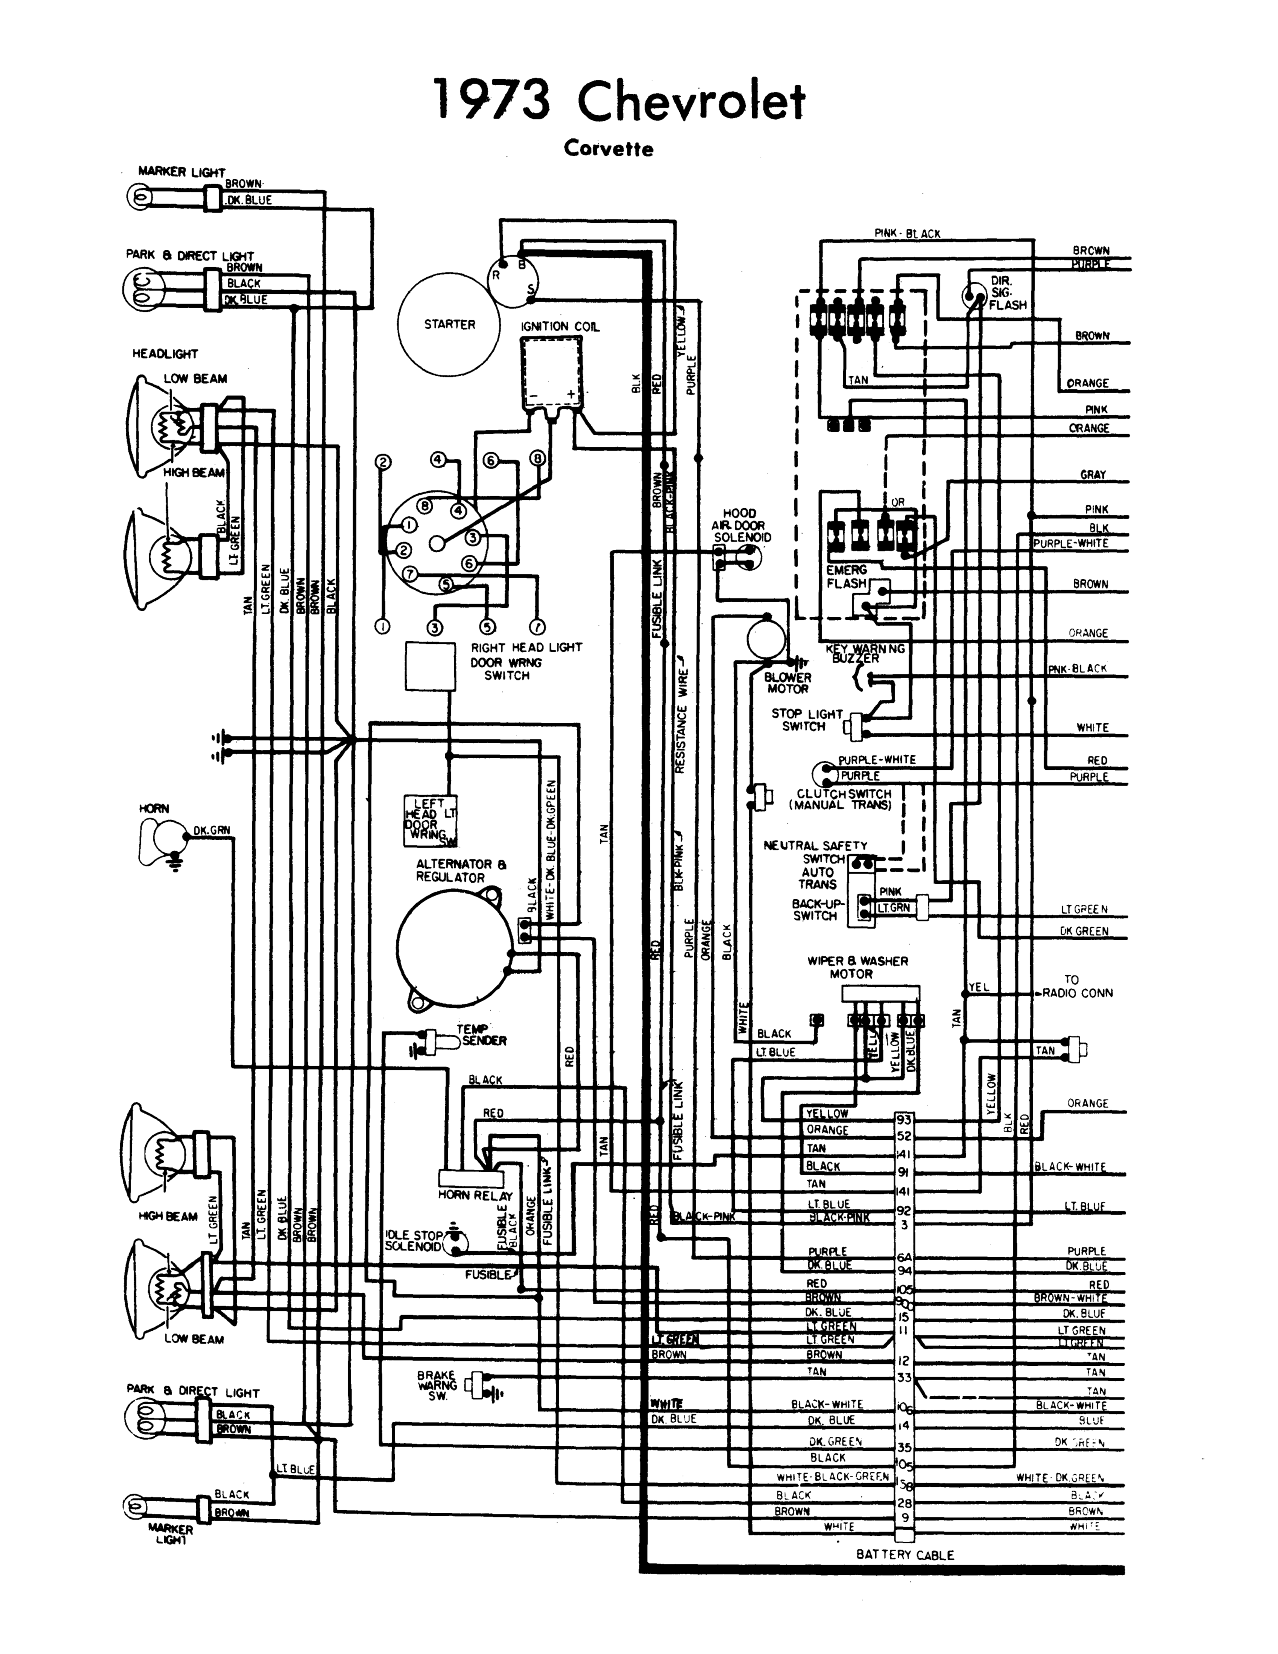 wiring diagram 1973 corvette chevy corvette 1973 wiring diagrams rh  pinterest com Alternator Wiring Diagram Land Rover Heat System Diagram